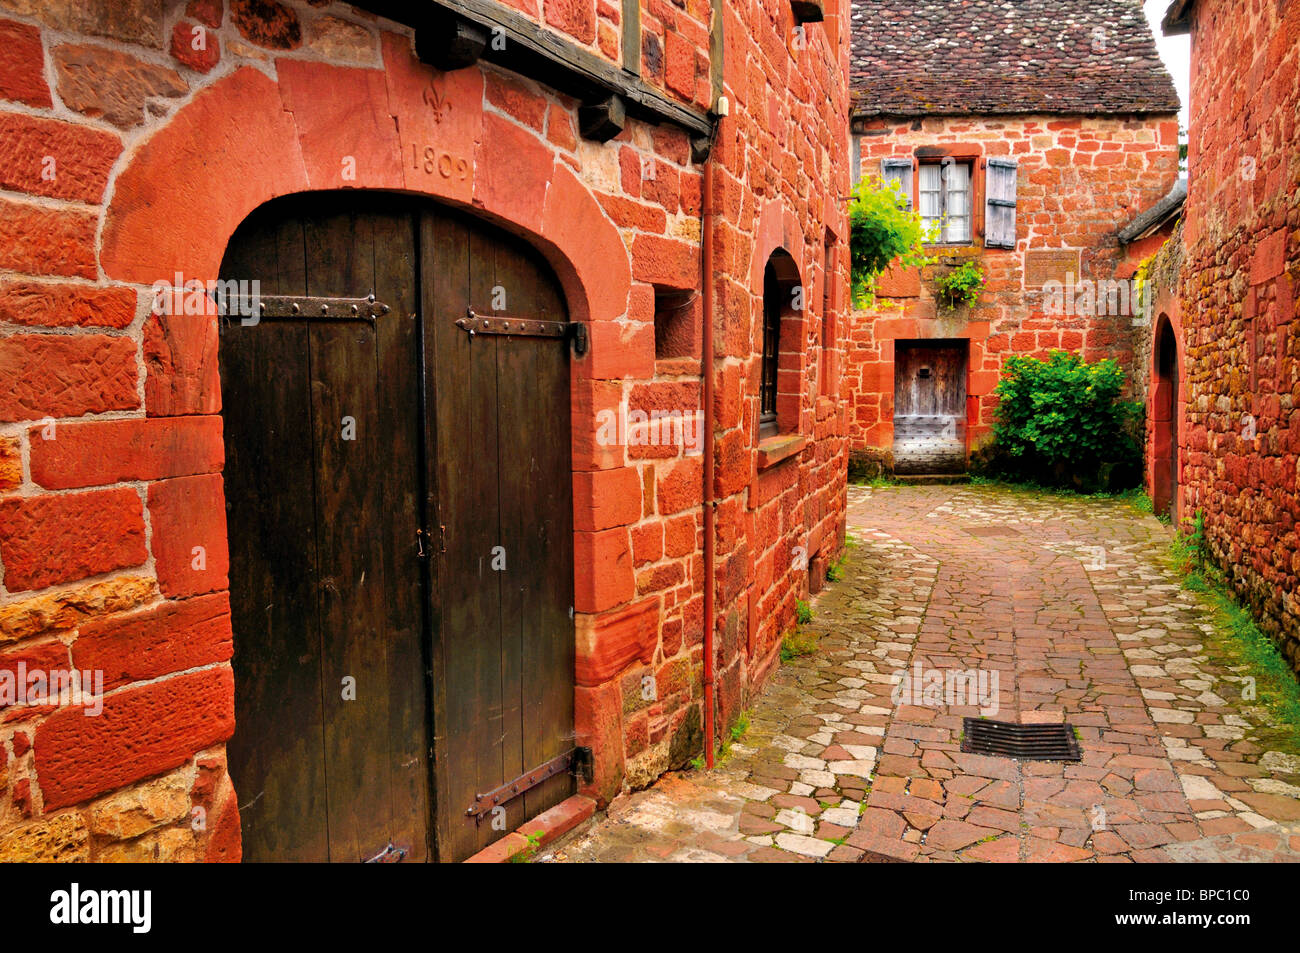 France: Alley and red sandstone houses in medieval village Collonges-la-Rouge - Stock Image